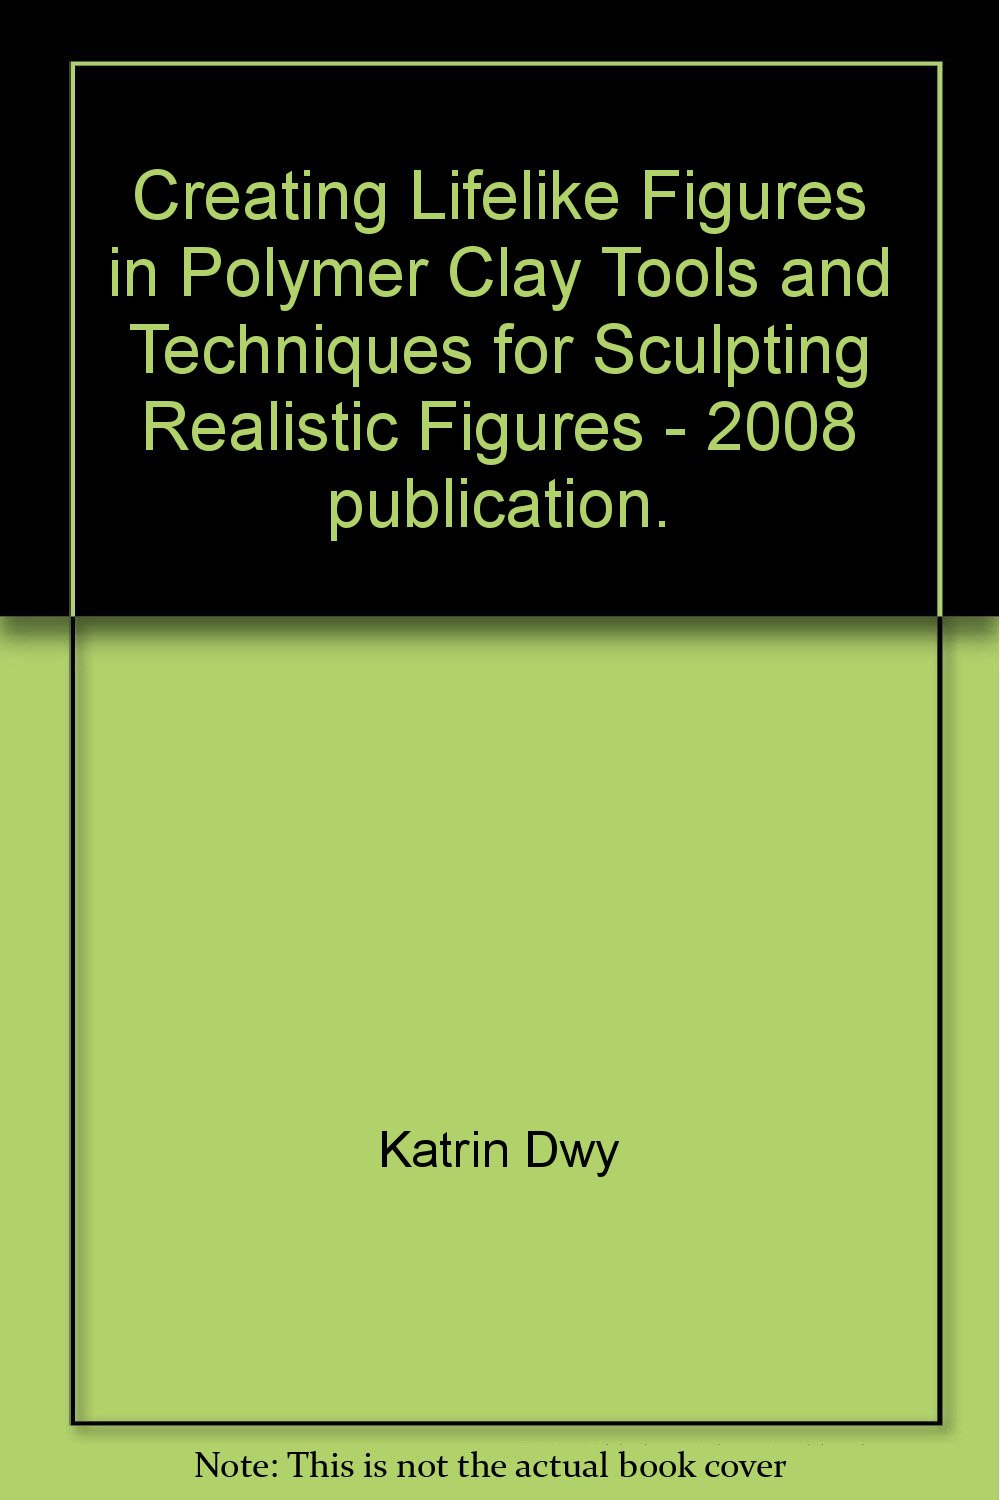 Creating Lifelike Figures in Polymer Clay Tools and Techniques for Sculpting Realistic Figures - 2008 publication.